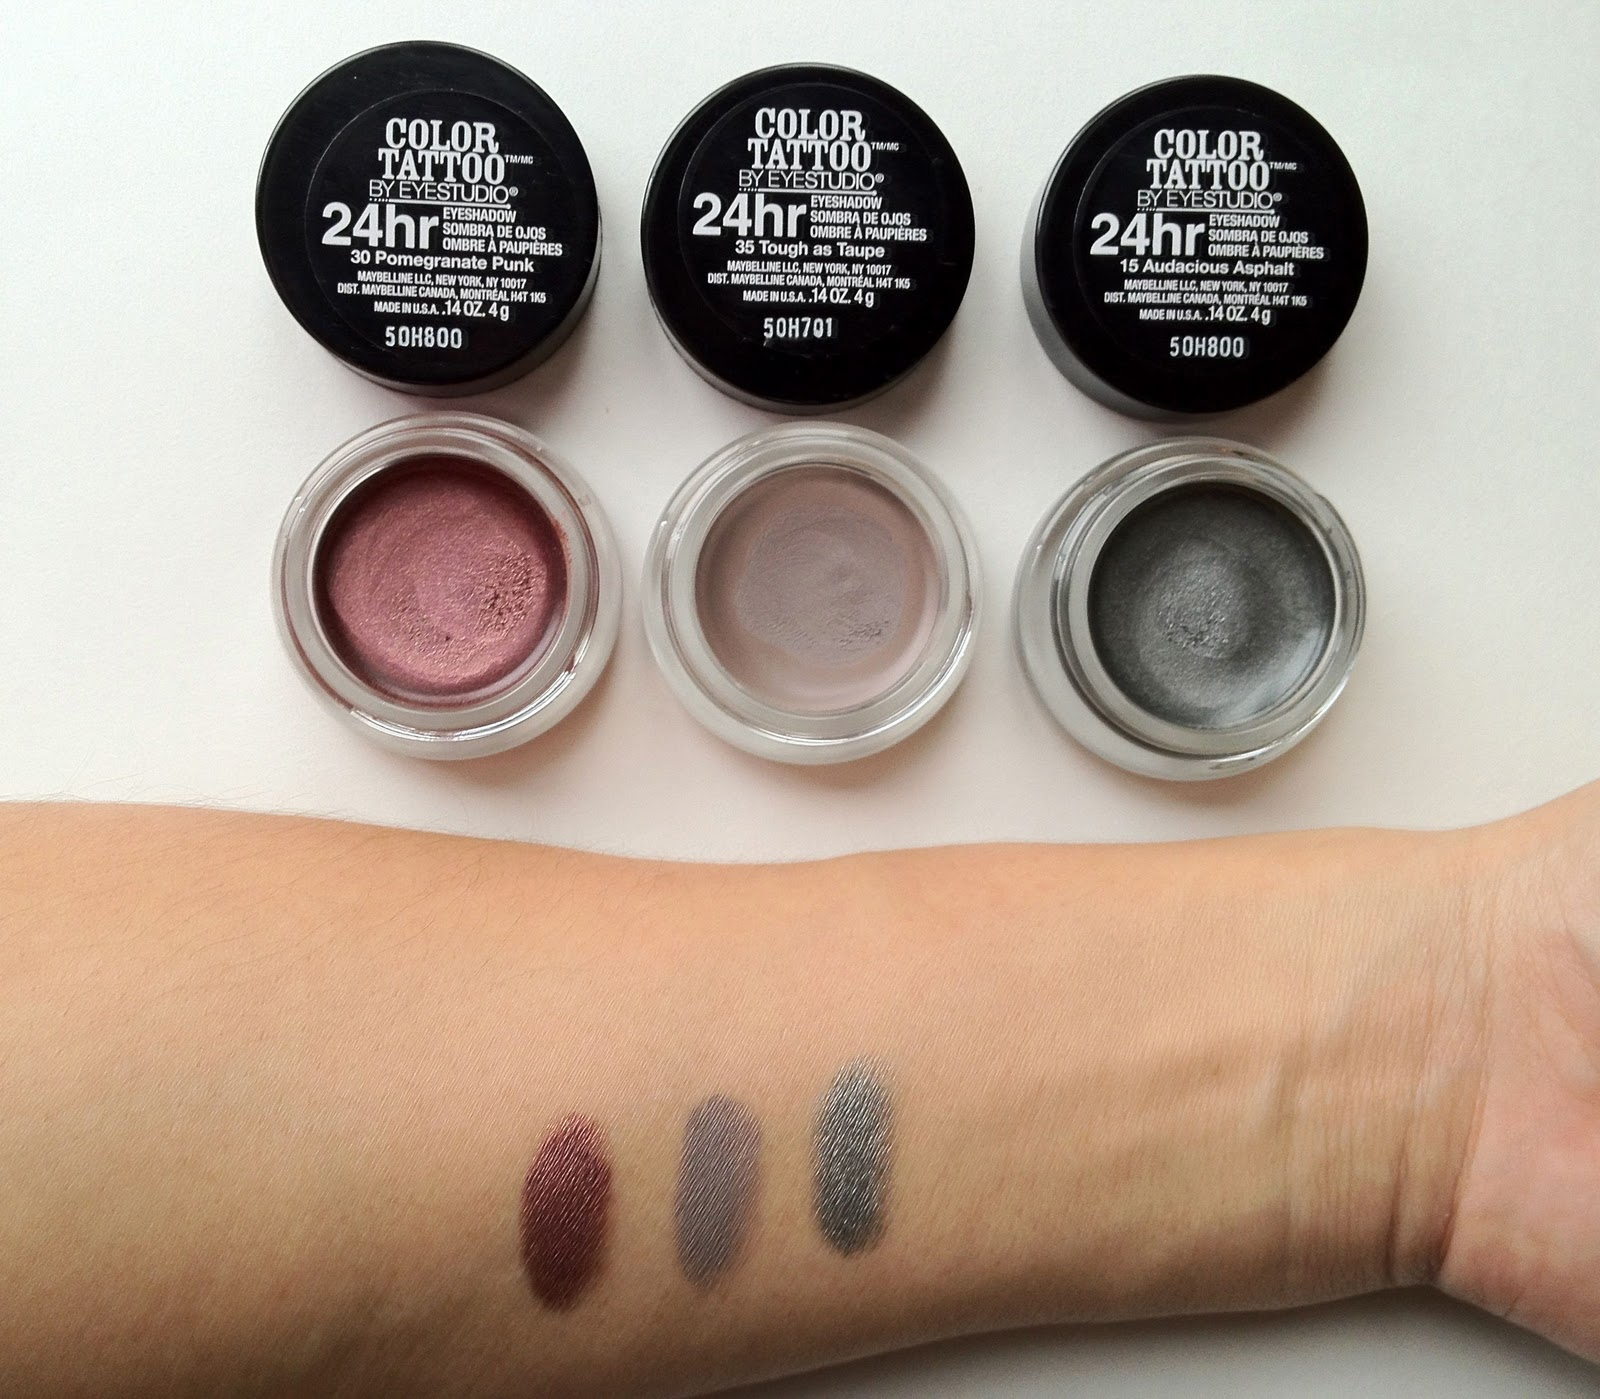 Maybelline color tattoo first impressions pixiemama for Color tattoo maybelline